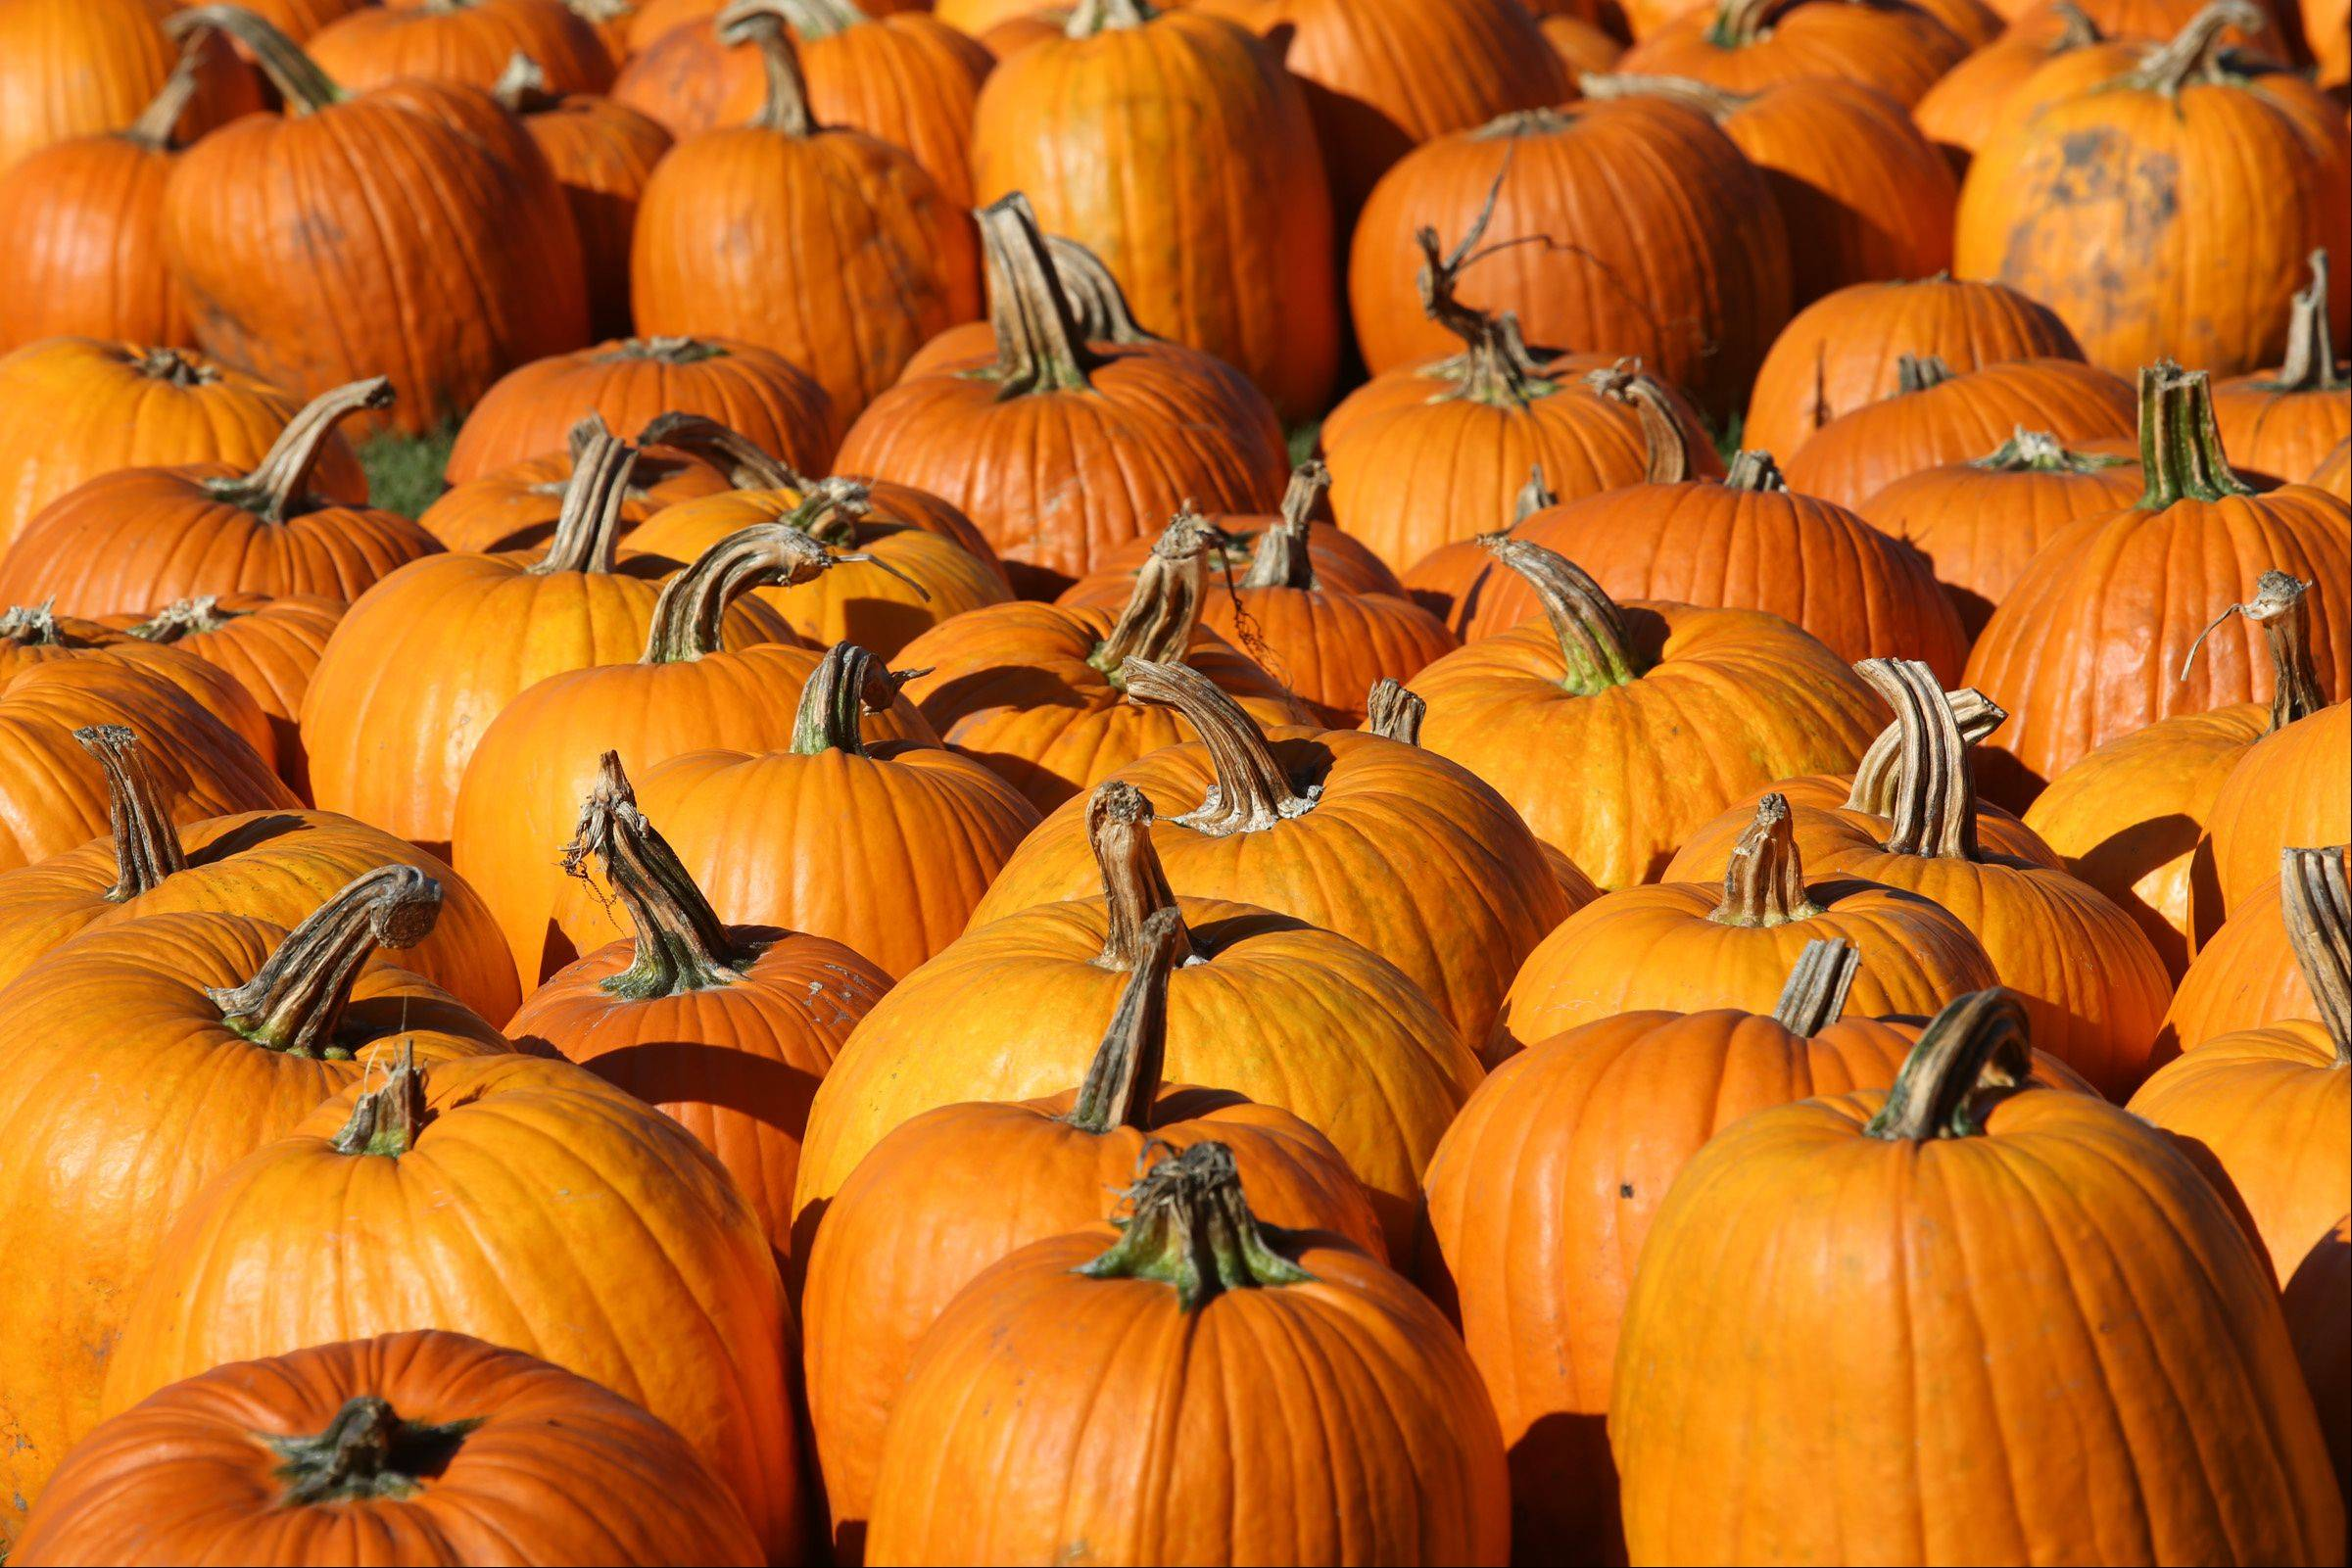 A large selection of pumpkins in all sizes and colors is available at Goebbert's Pumpkin Patch in Hampshire.